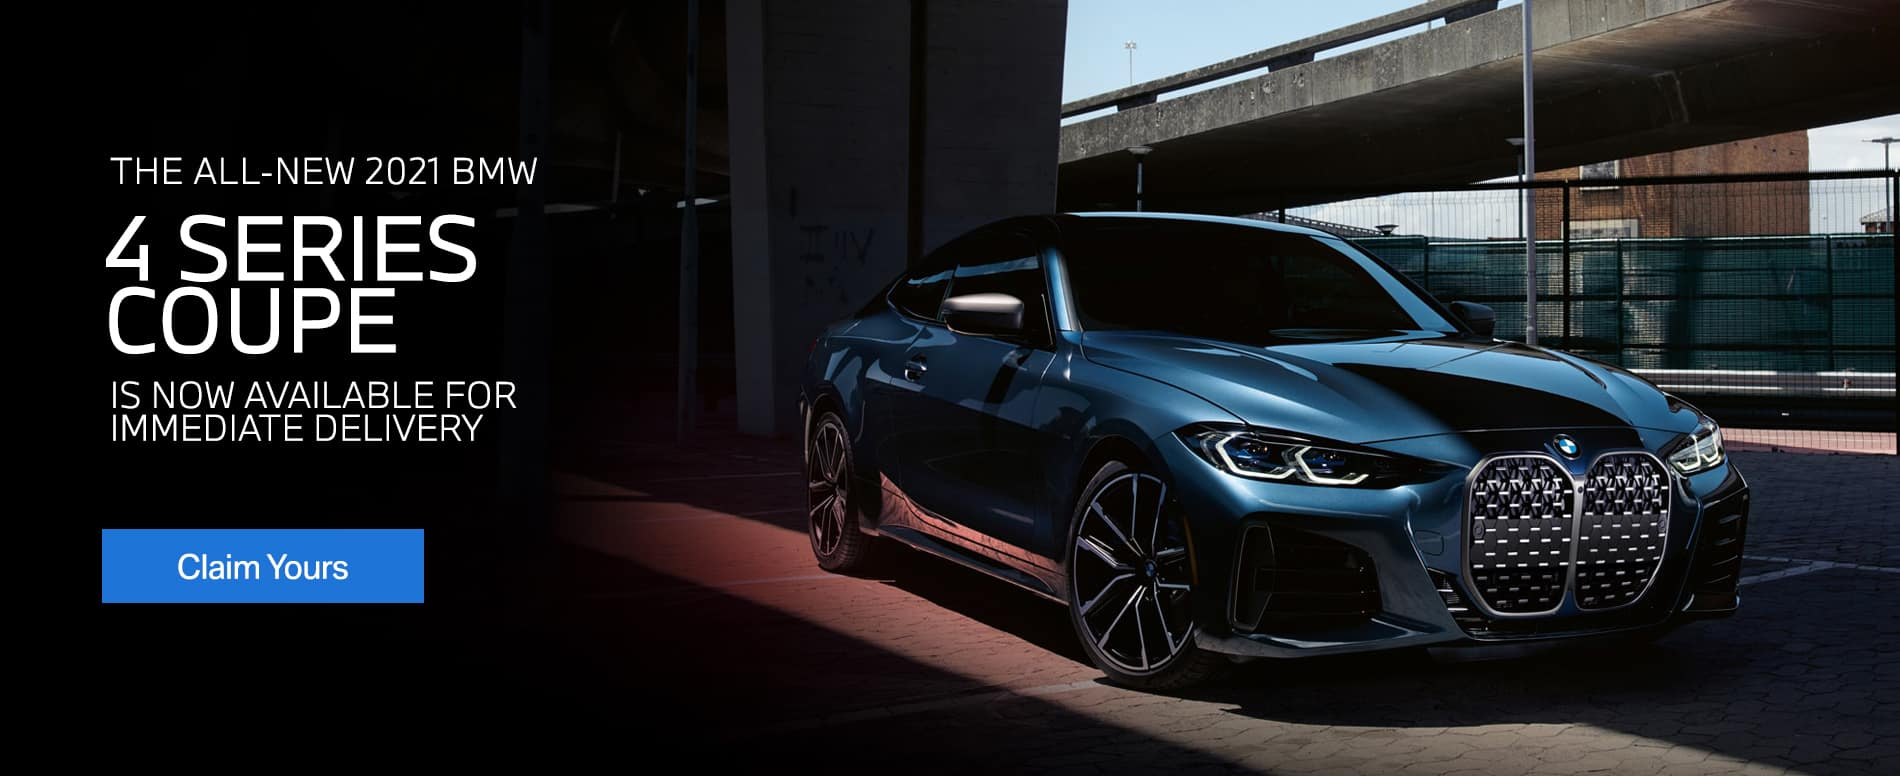 All-New 2021 BMW 4 Series is now available.